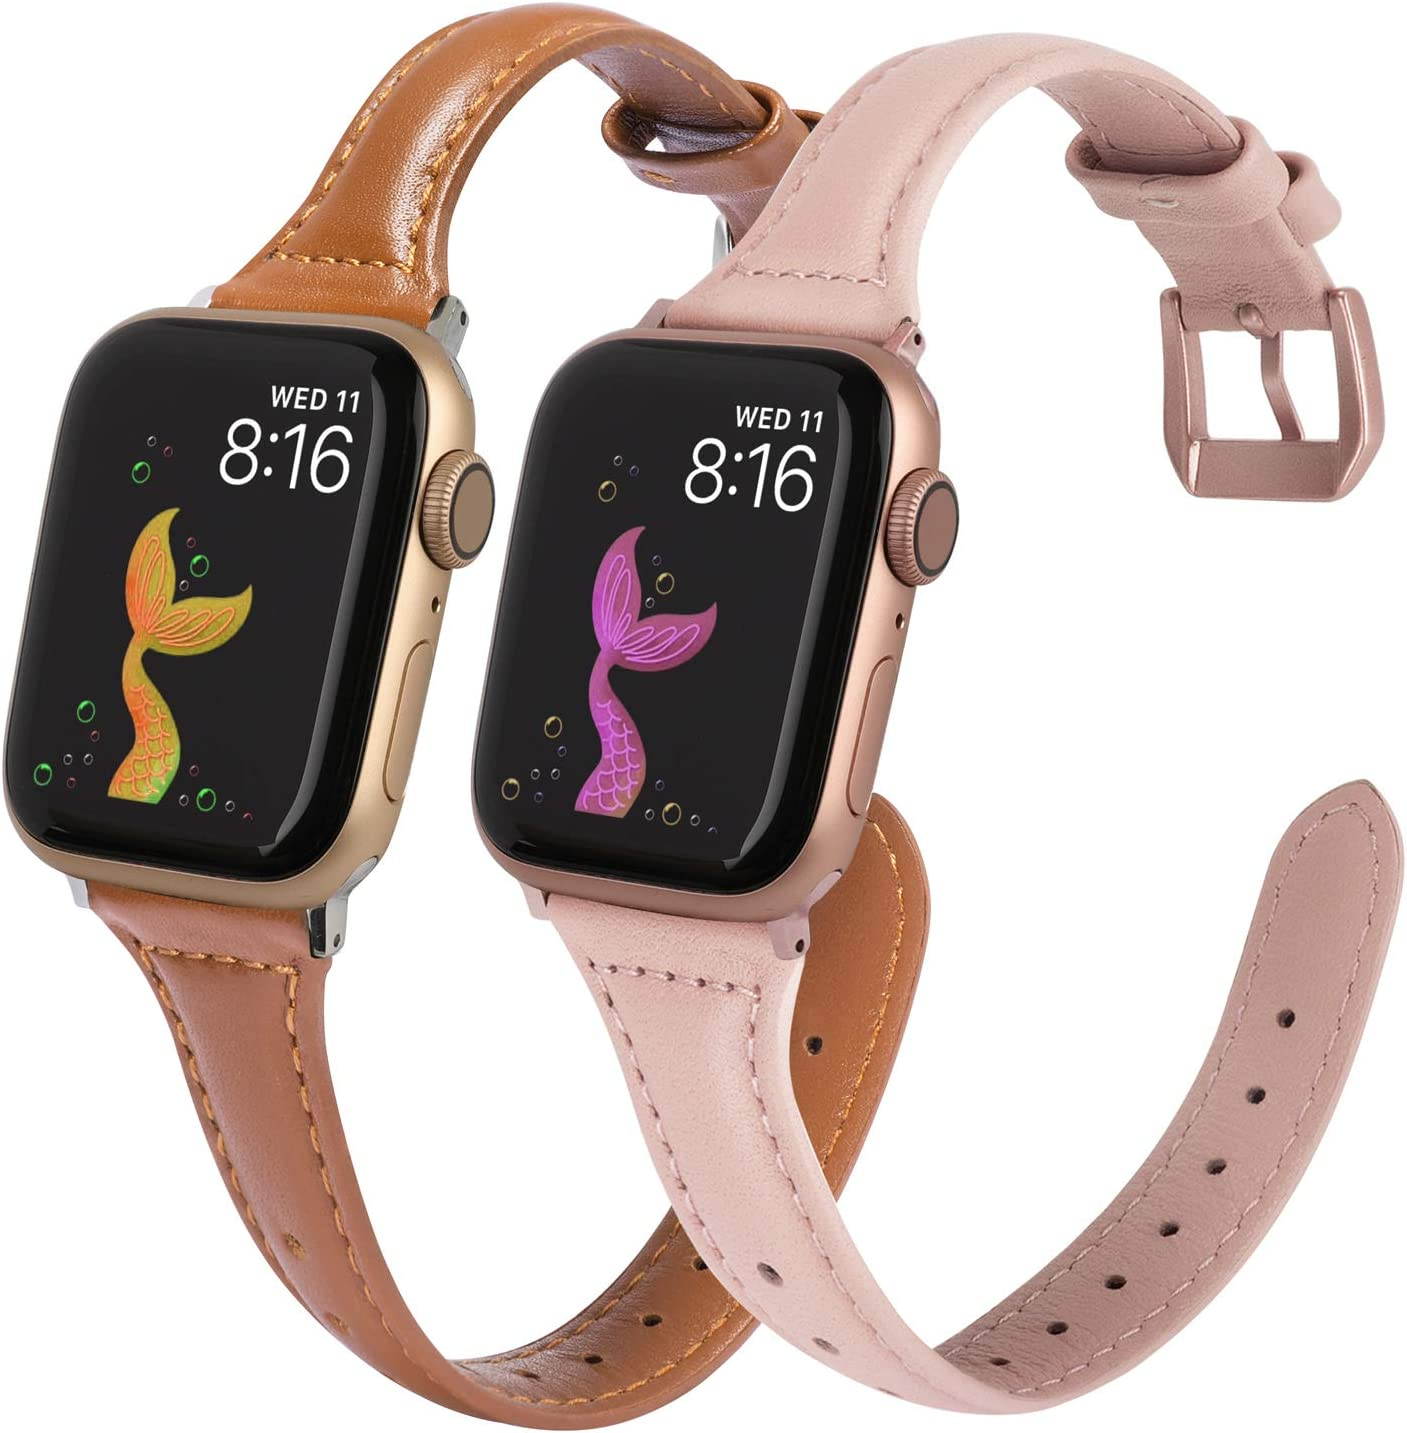 Minyee 2-Pack Leather Bands Compatible with Apple Watch 38mm 40mm Womens Thin Cute Slim Wristband, Durable Soft Classic Small Strap for iWatch SE Series 6 5 4 3 2 1 (38mm 40mm, Brown/Rose Pink)